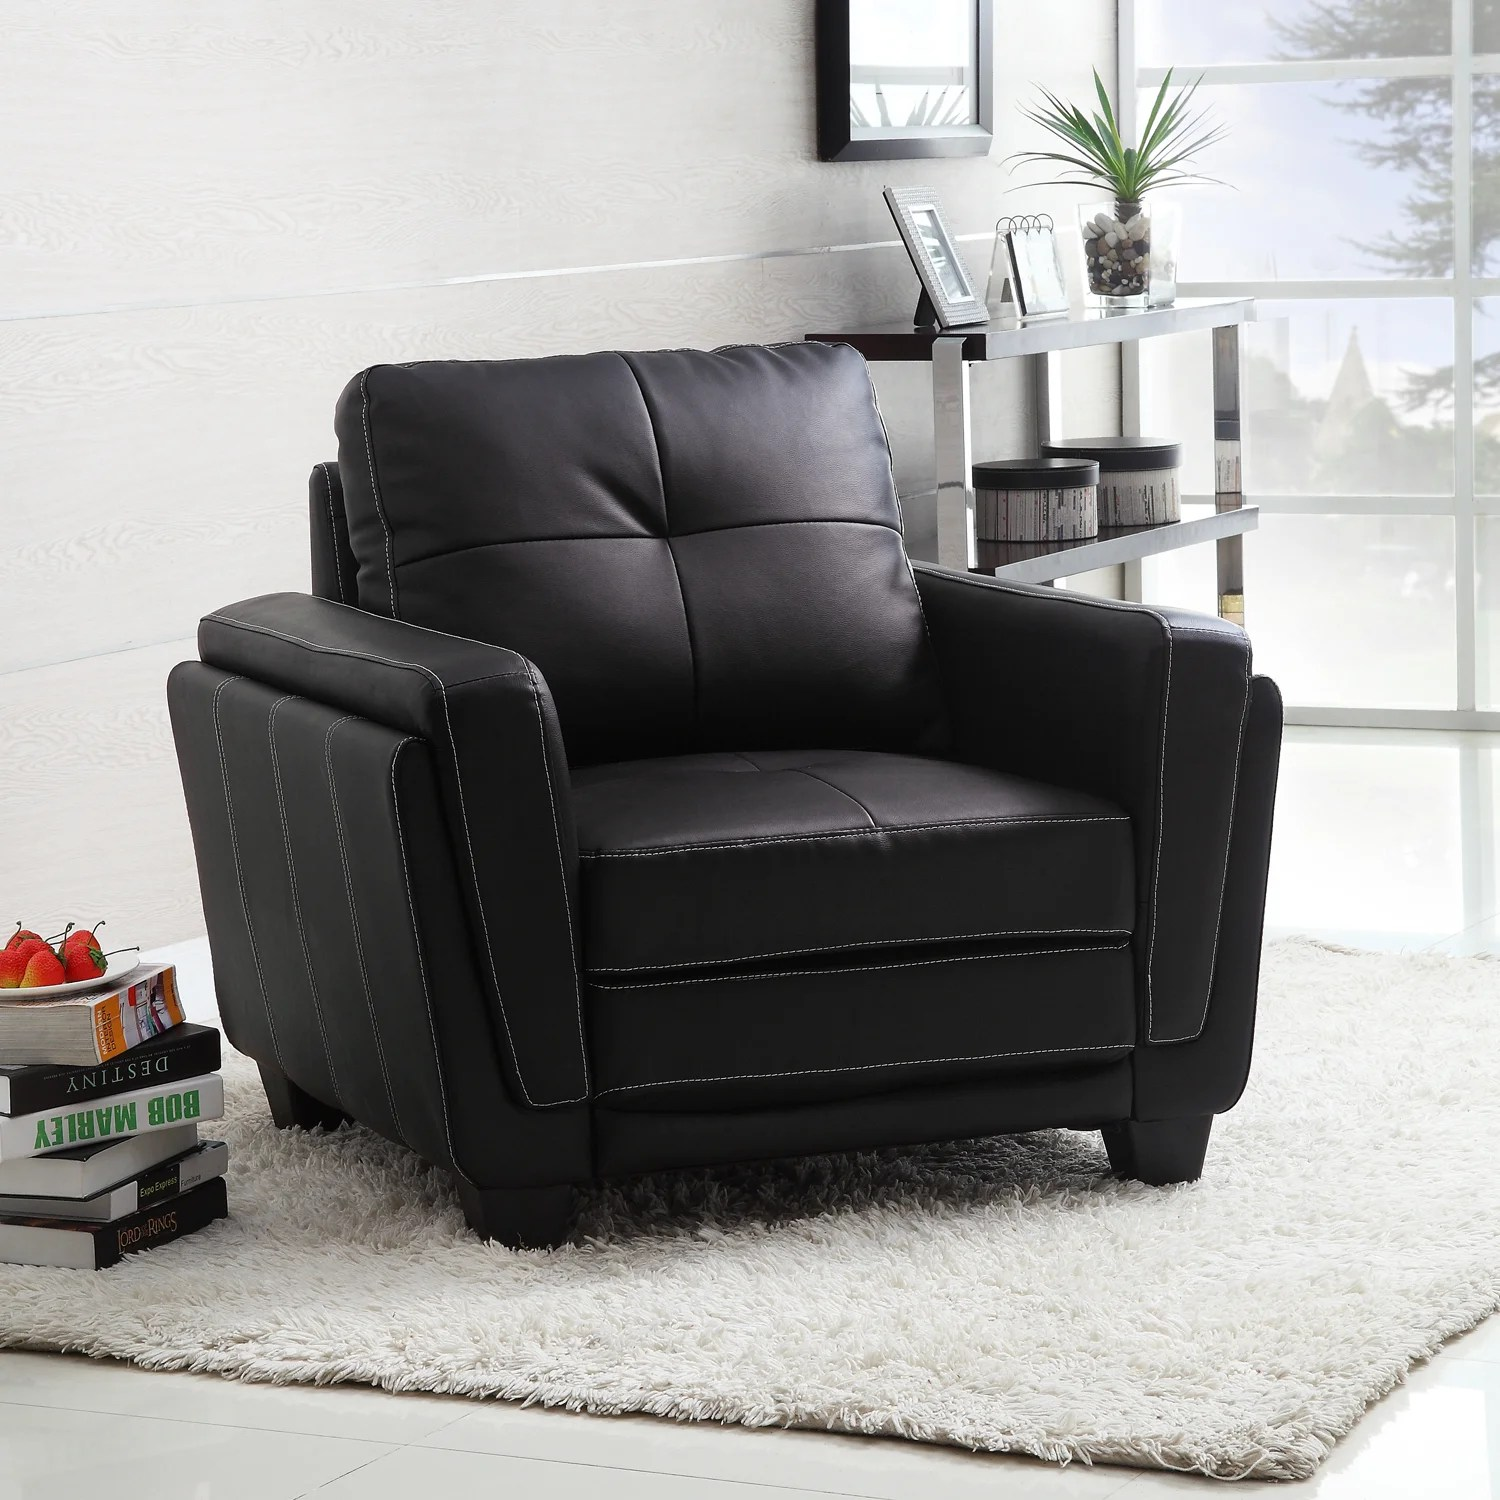 tribecca home eland black bonded leather sofa set covering service leah faux low profile chair 14049296